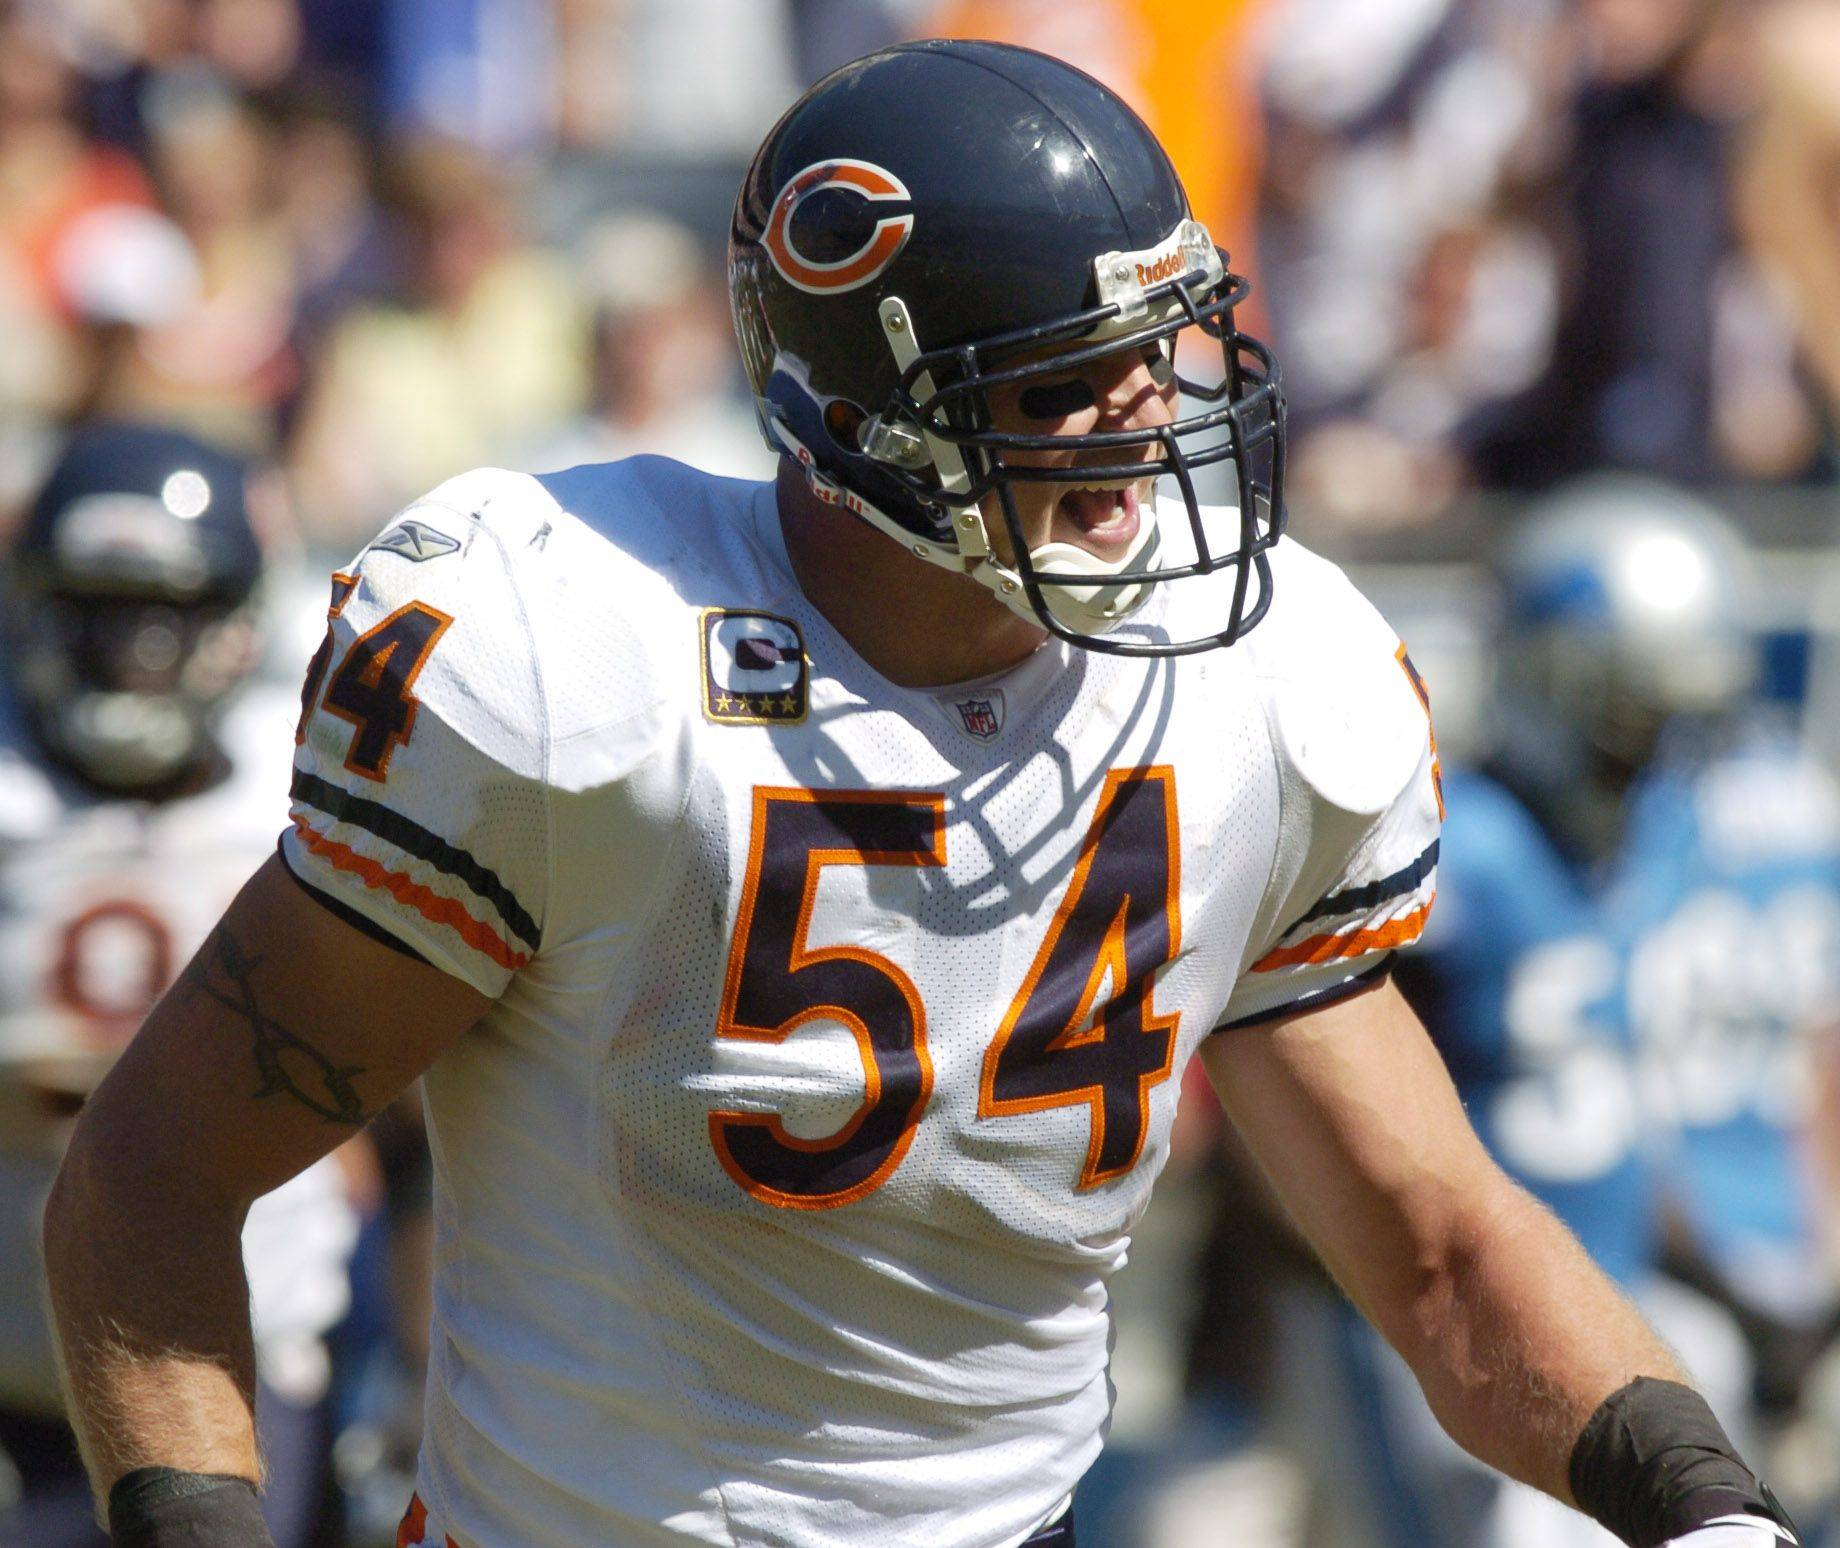 Bears linebacker Brian Urlacher, 33, says the defense is still playing at a high level despite relying heavily on six 30-somethings.